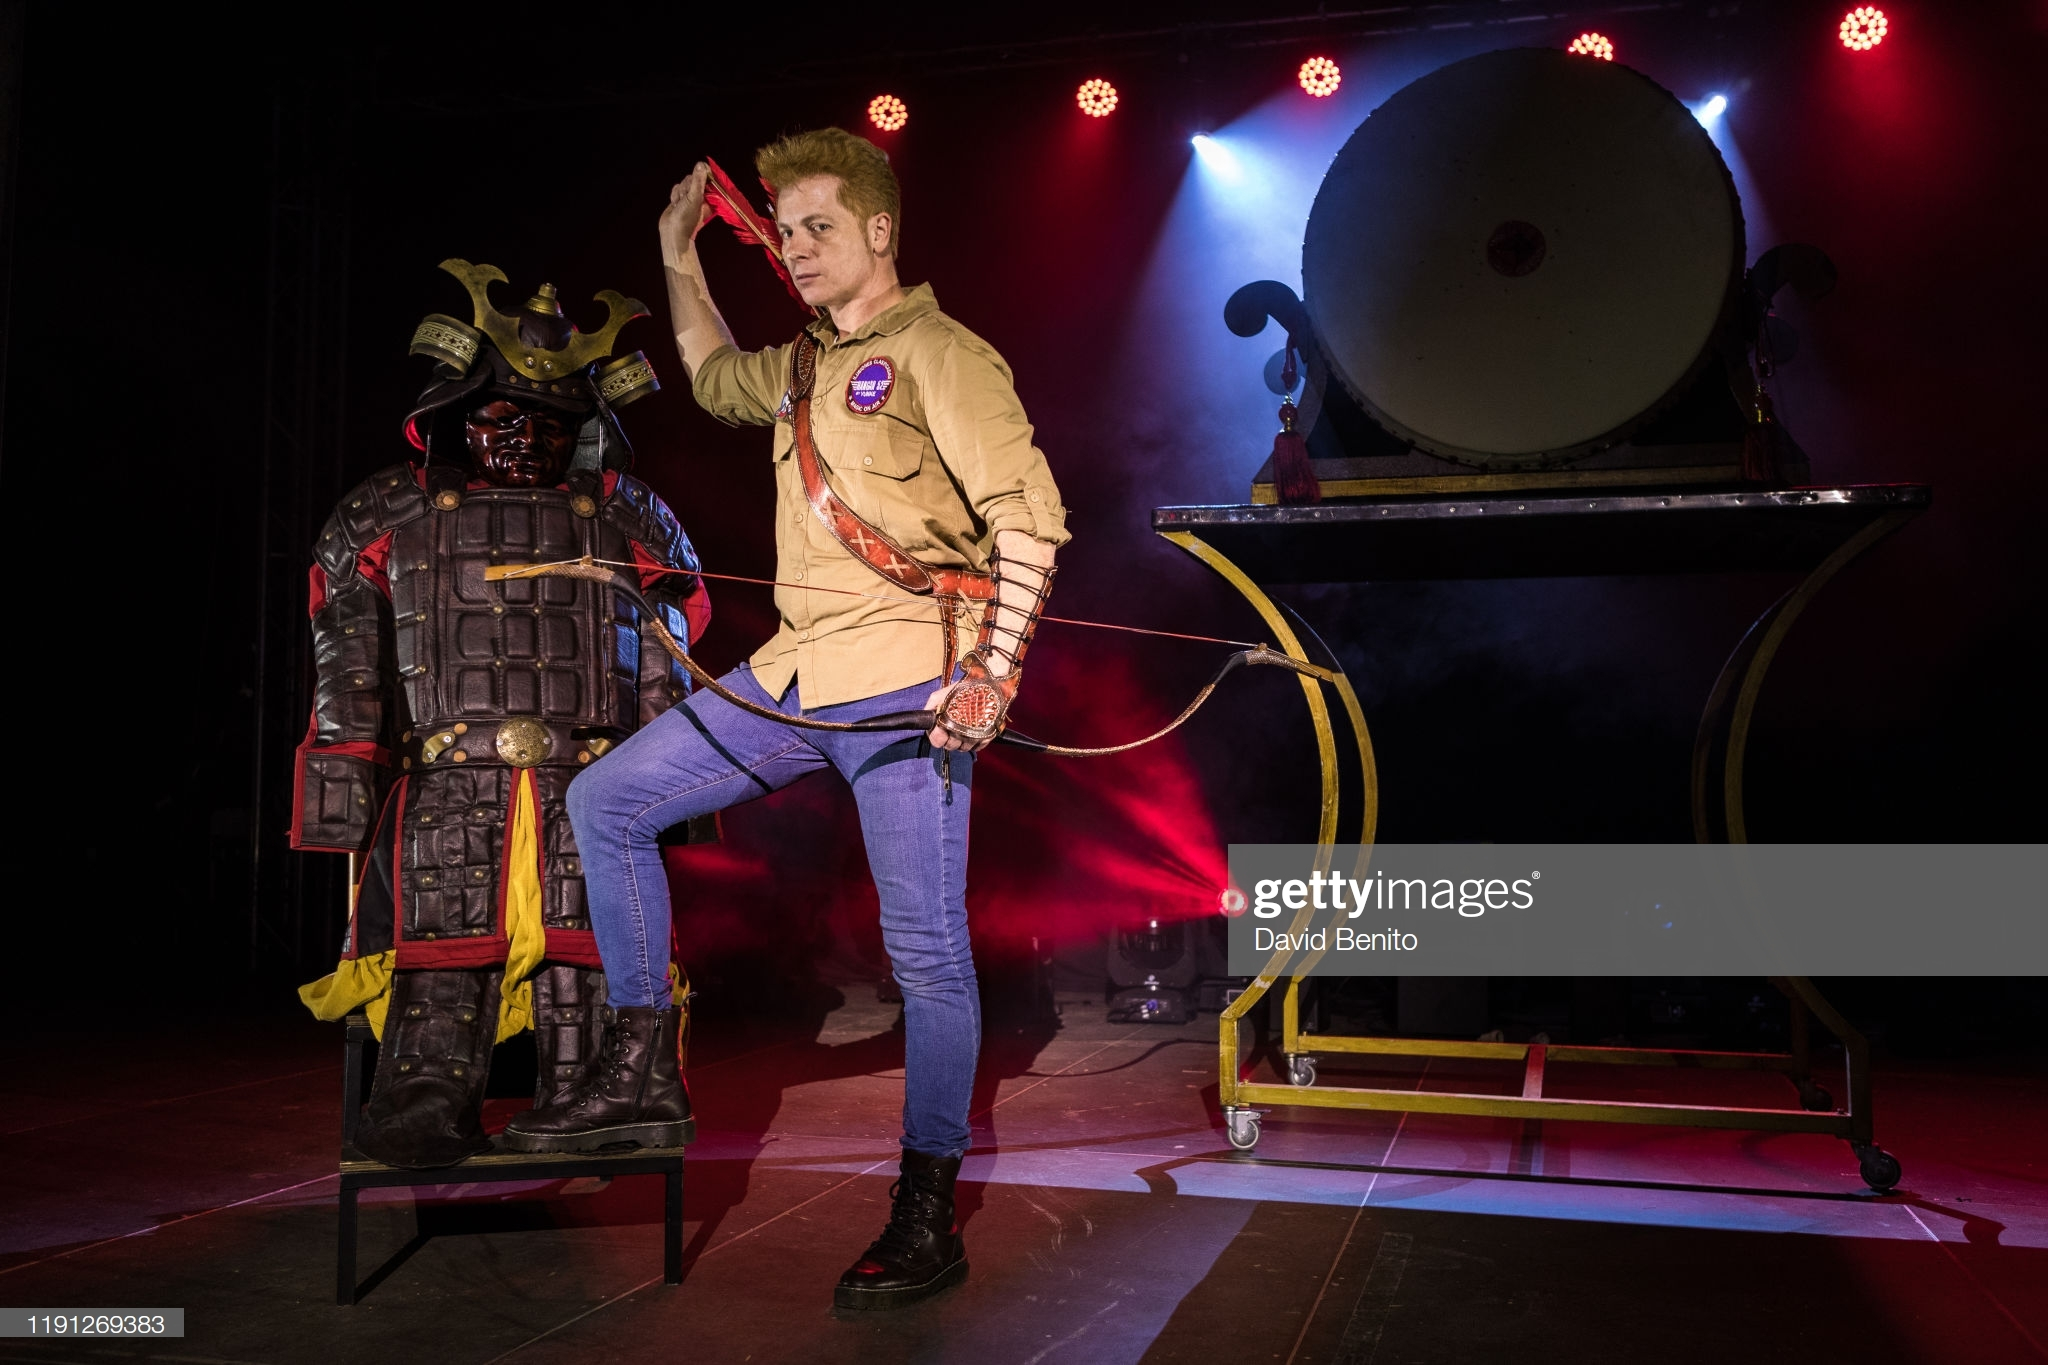 gettyimages-1191269383-2048x2048